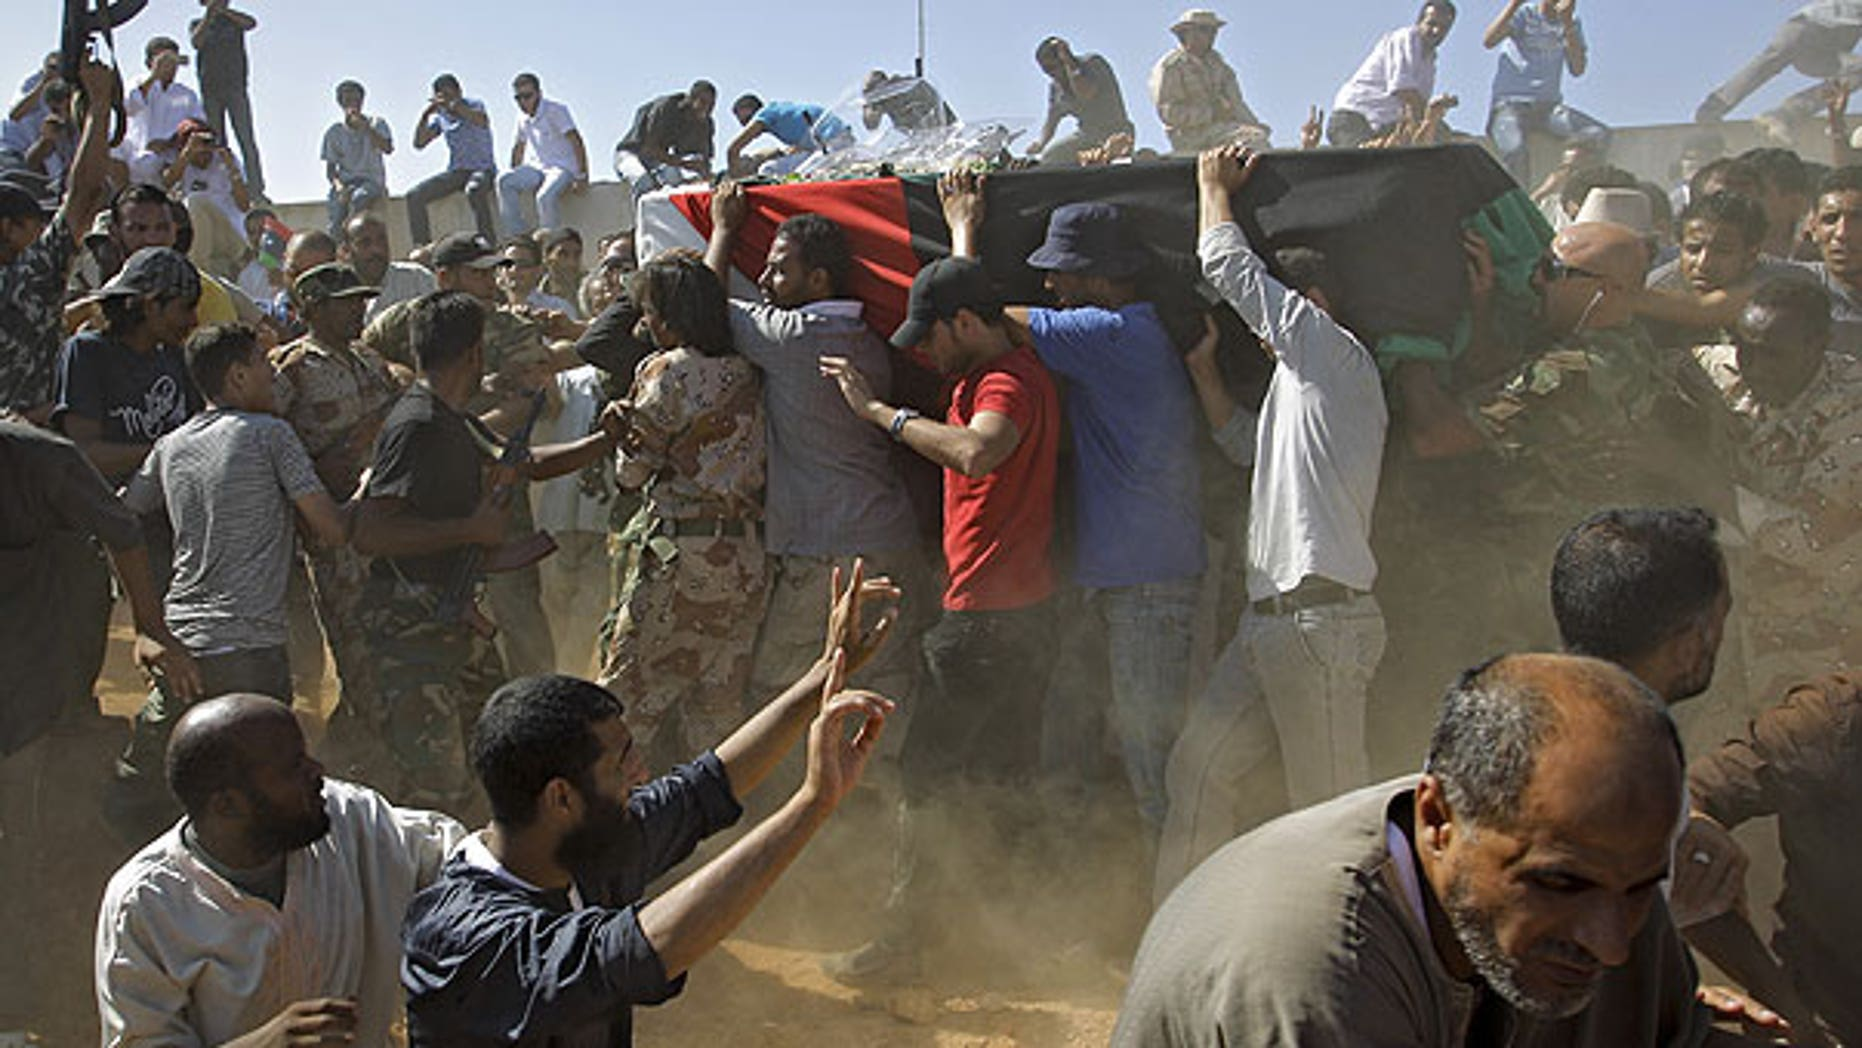 July 29: Libyan men carry a coffin, gesture and chant slogans during funeral of Libyan rebels' military chief Abdel-Fattah Younis in the rebel-held town of Benghazi, Libya.